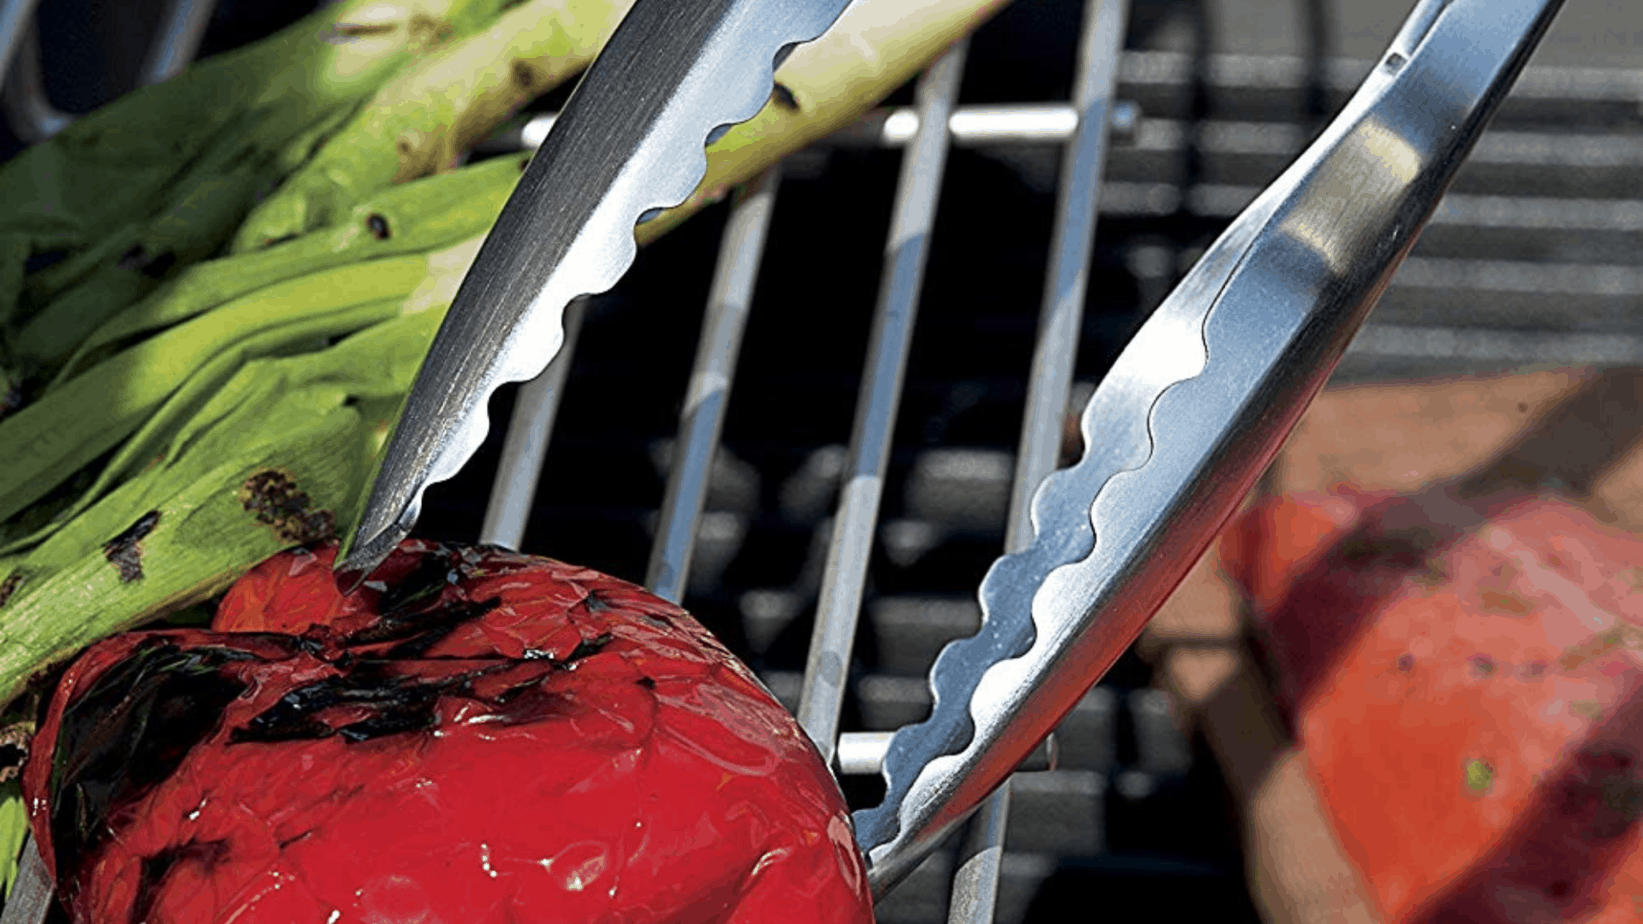 image of weber 6610 tongs being used to pick up grilled veggies